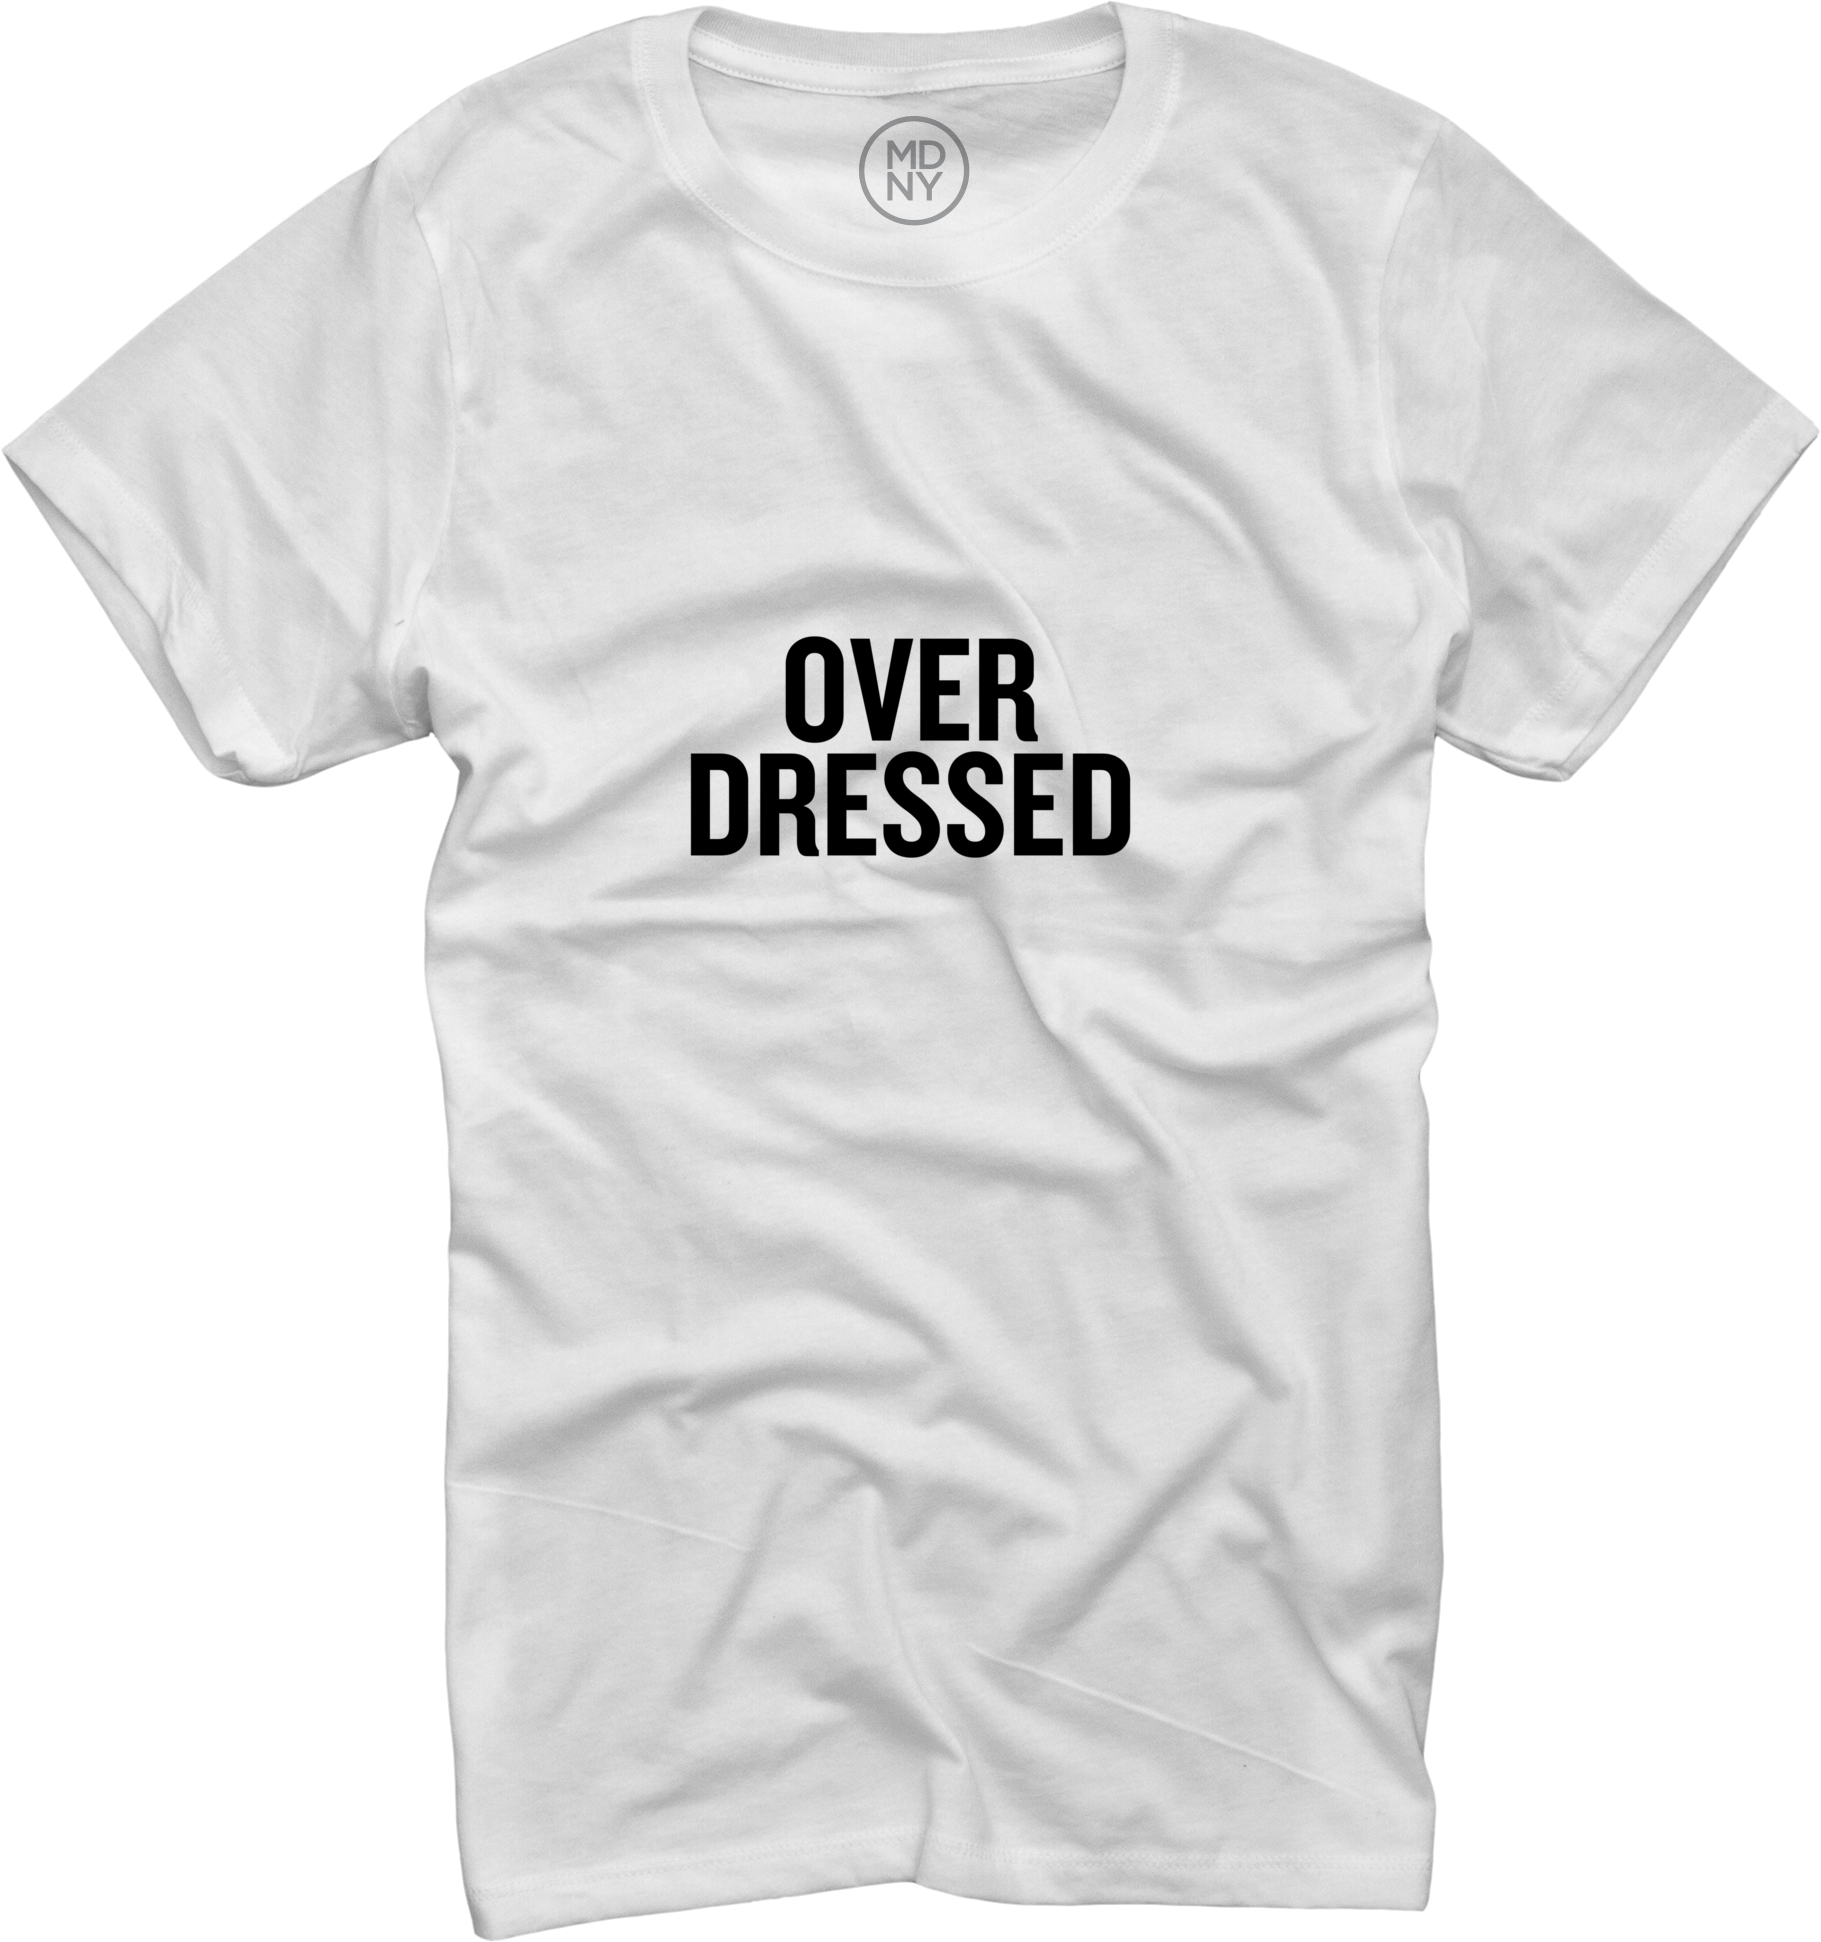 Christian Siriano - Over Dressed (white)